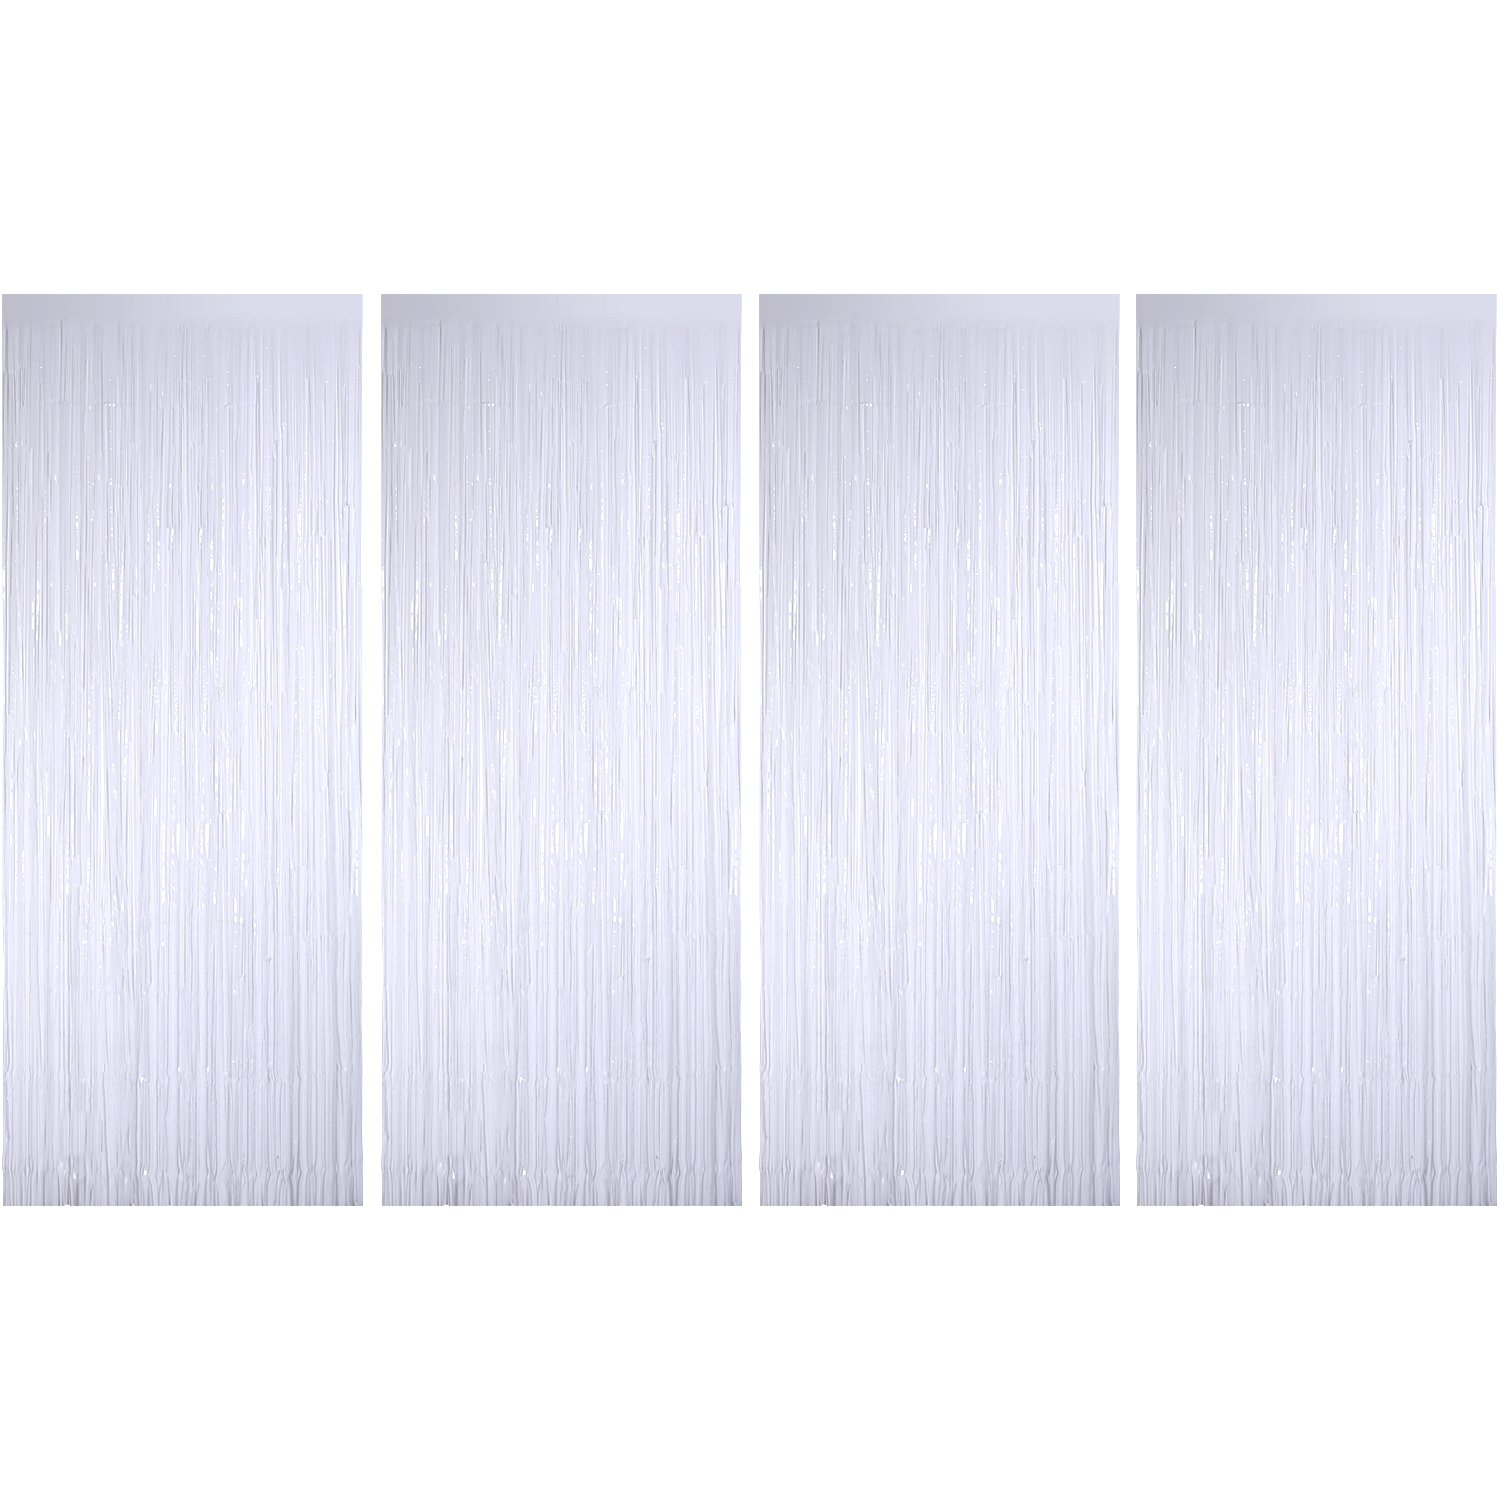 Sumind 4 Pack Foil Curtains Metallic Fringe Curtains Shimmer Curtain for Birthday Wedding Party Christmas Decorations (White)